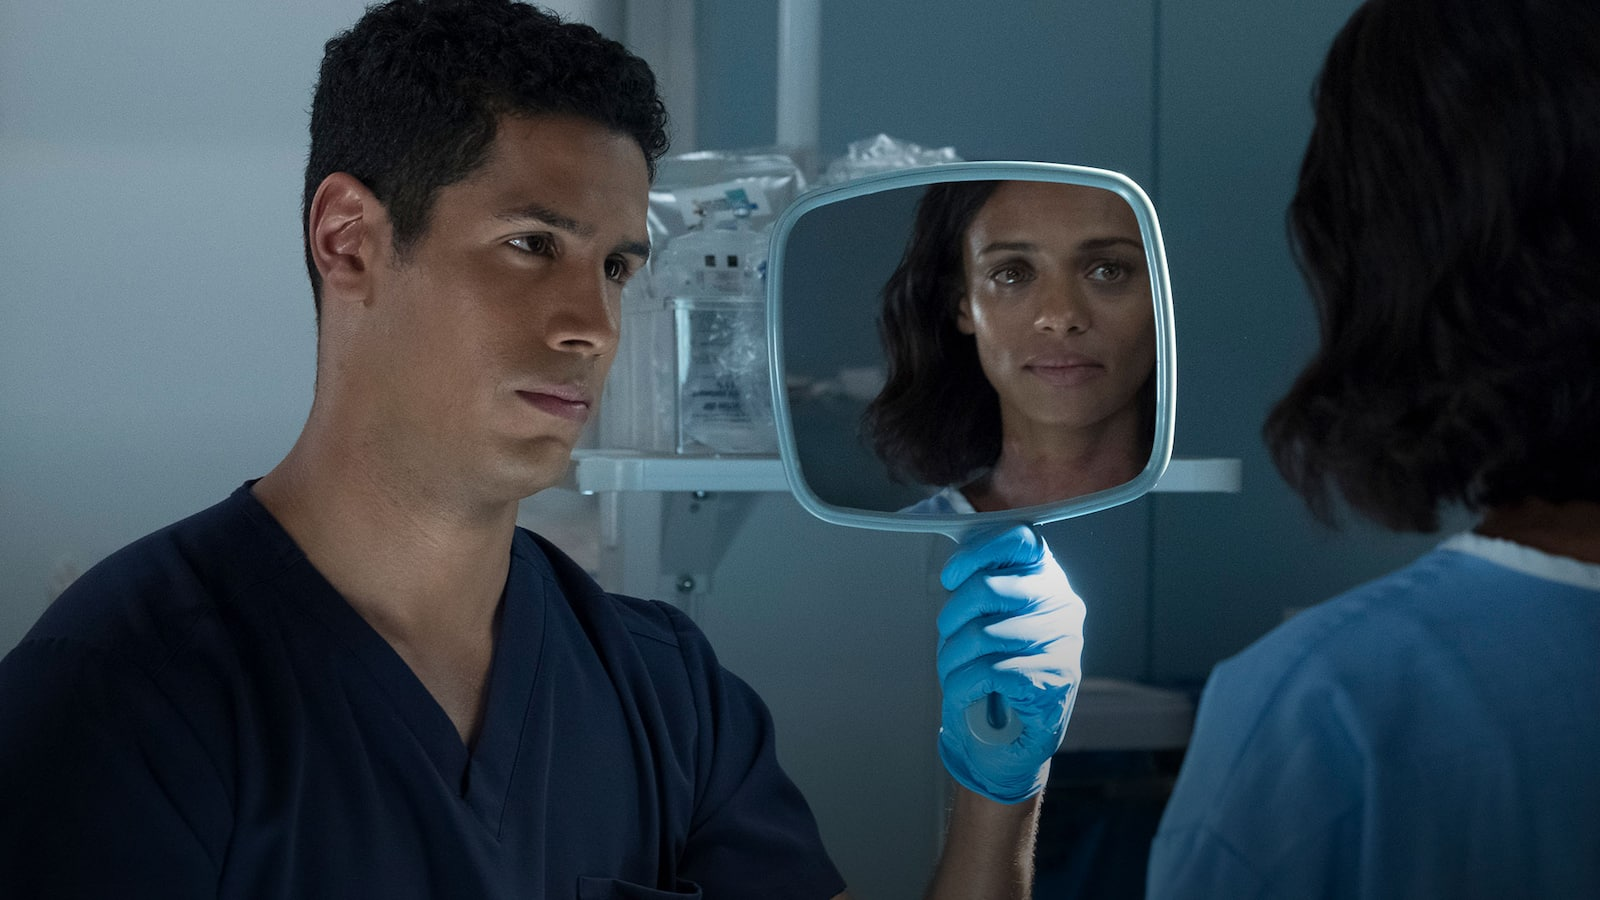 the-good-doctor/sesong-1/episode-17